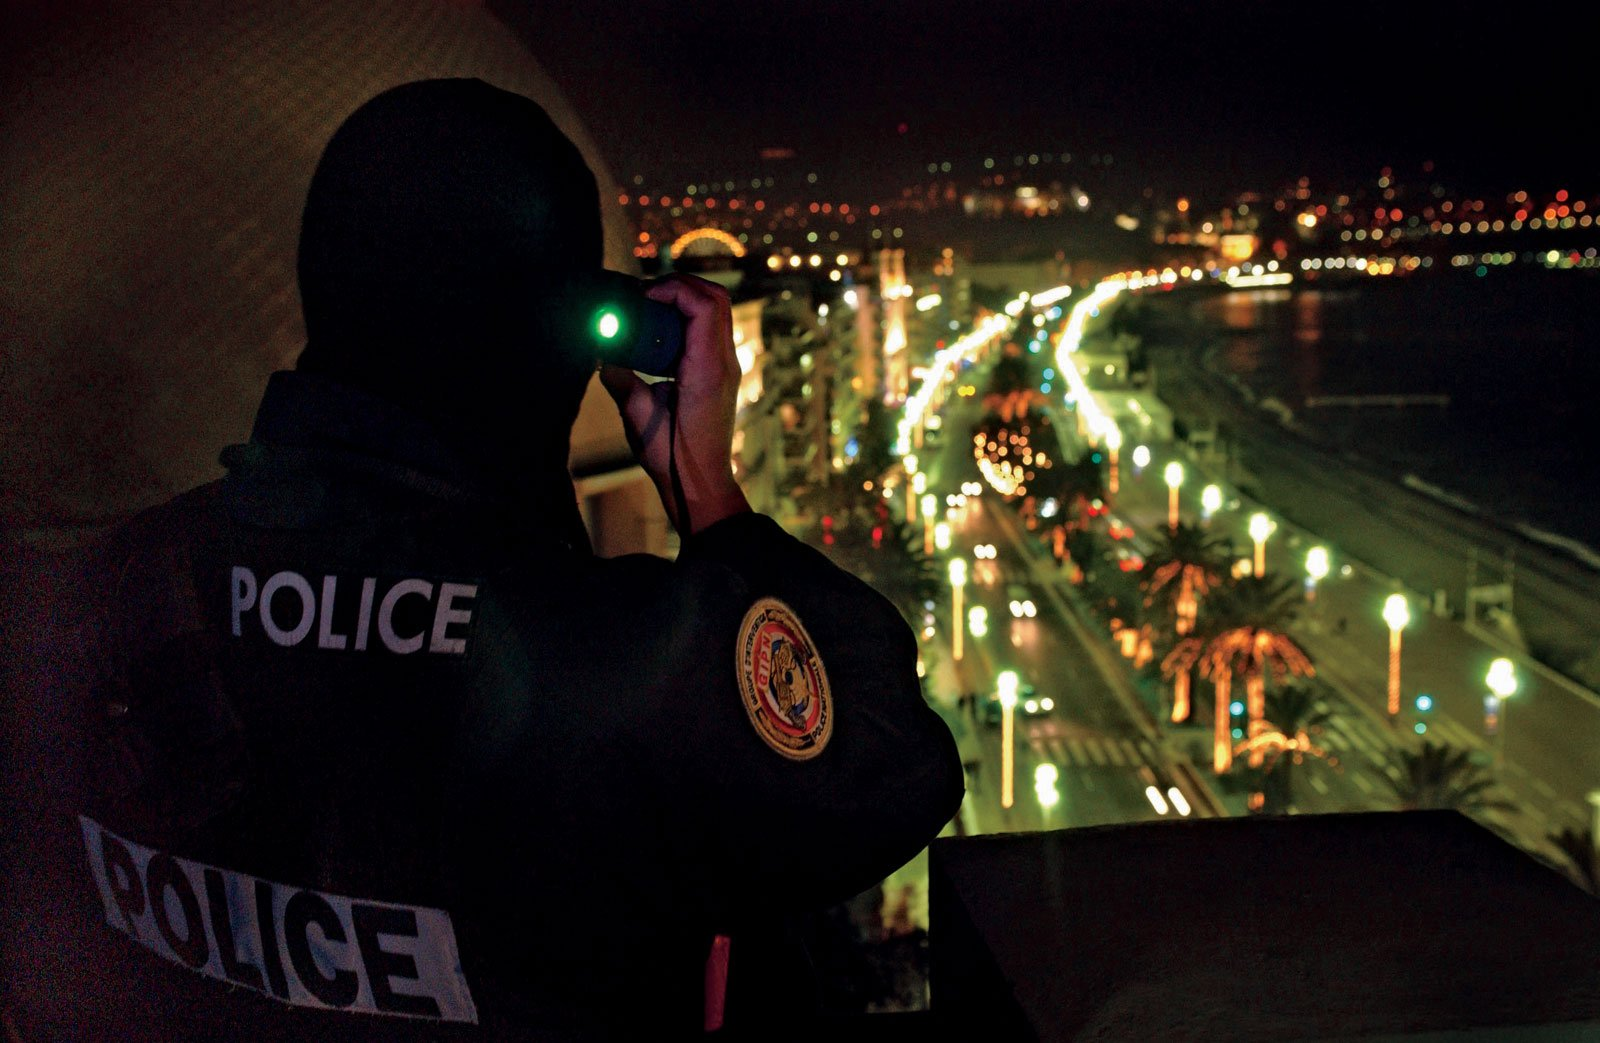 The new way police are surveilling you: Calculating your threat 'score'